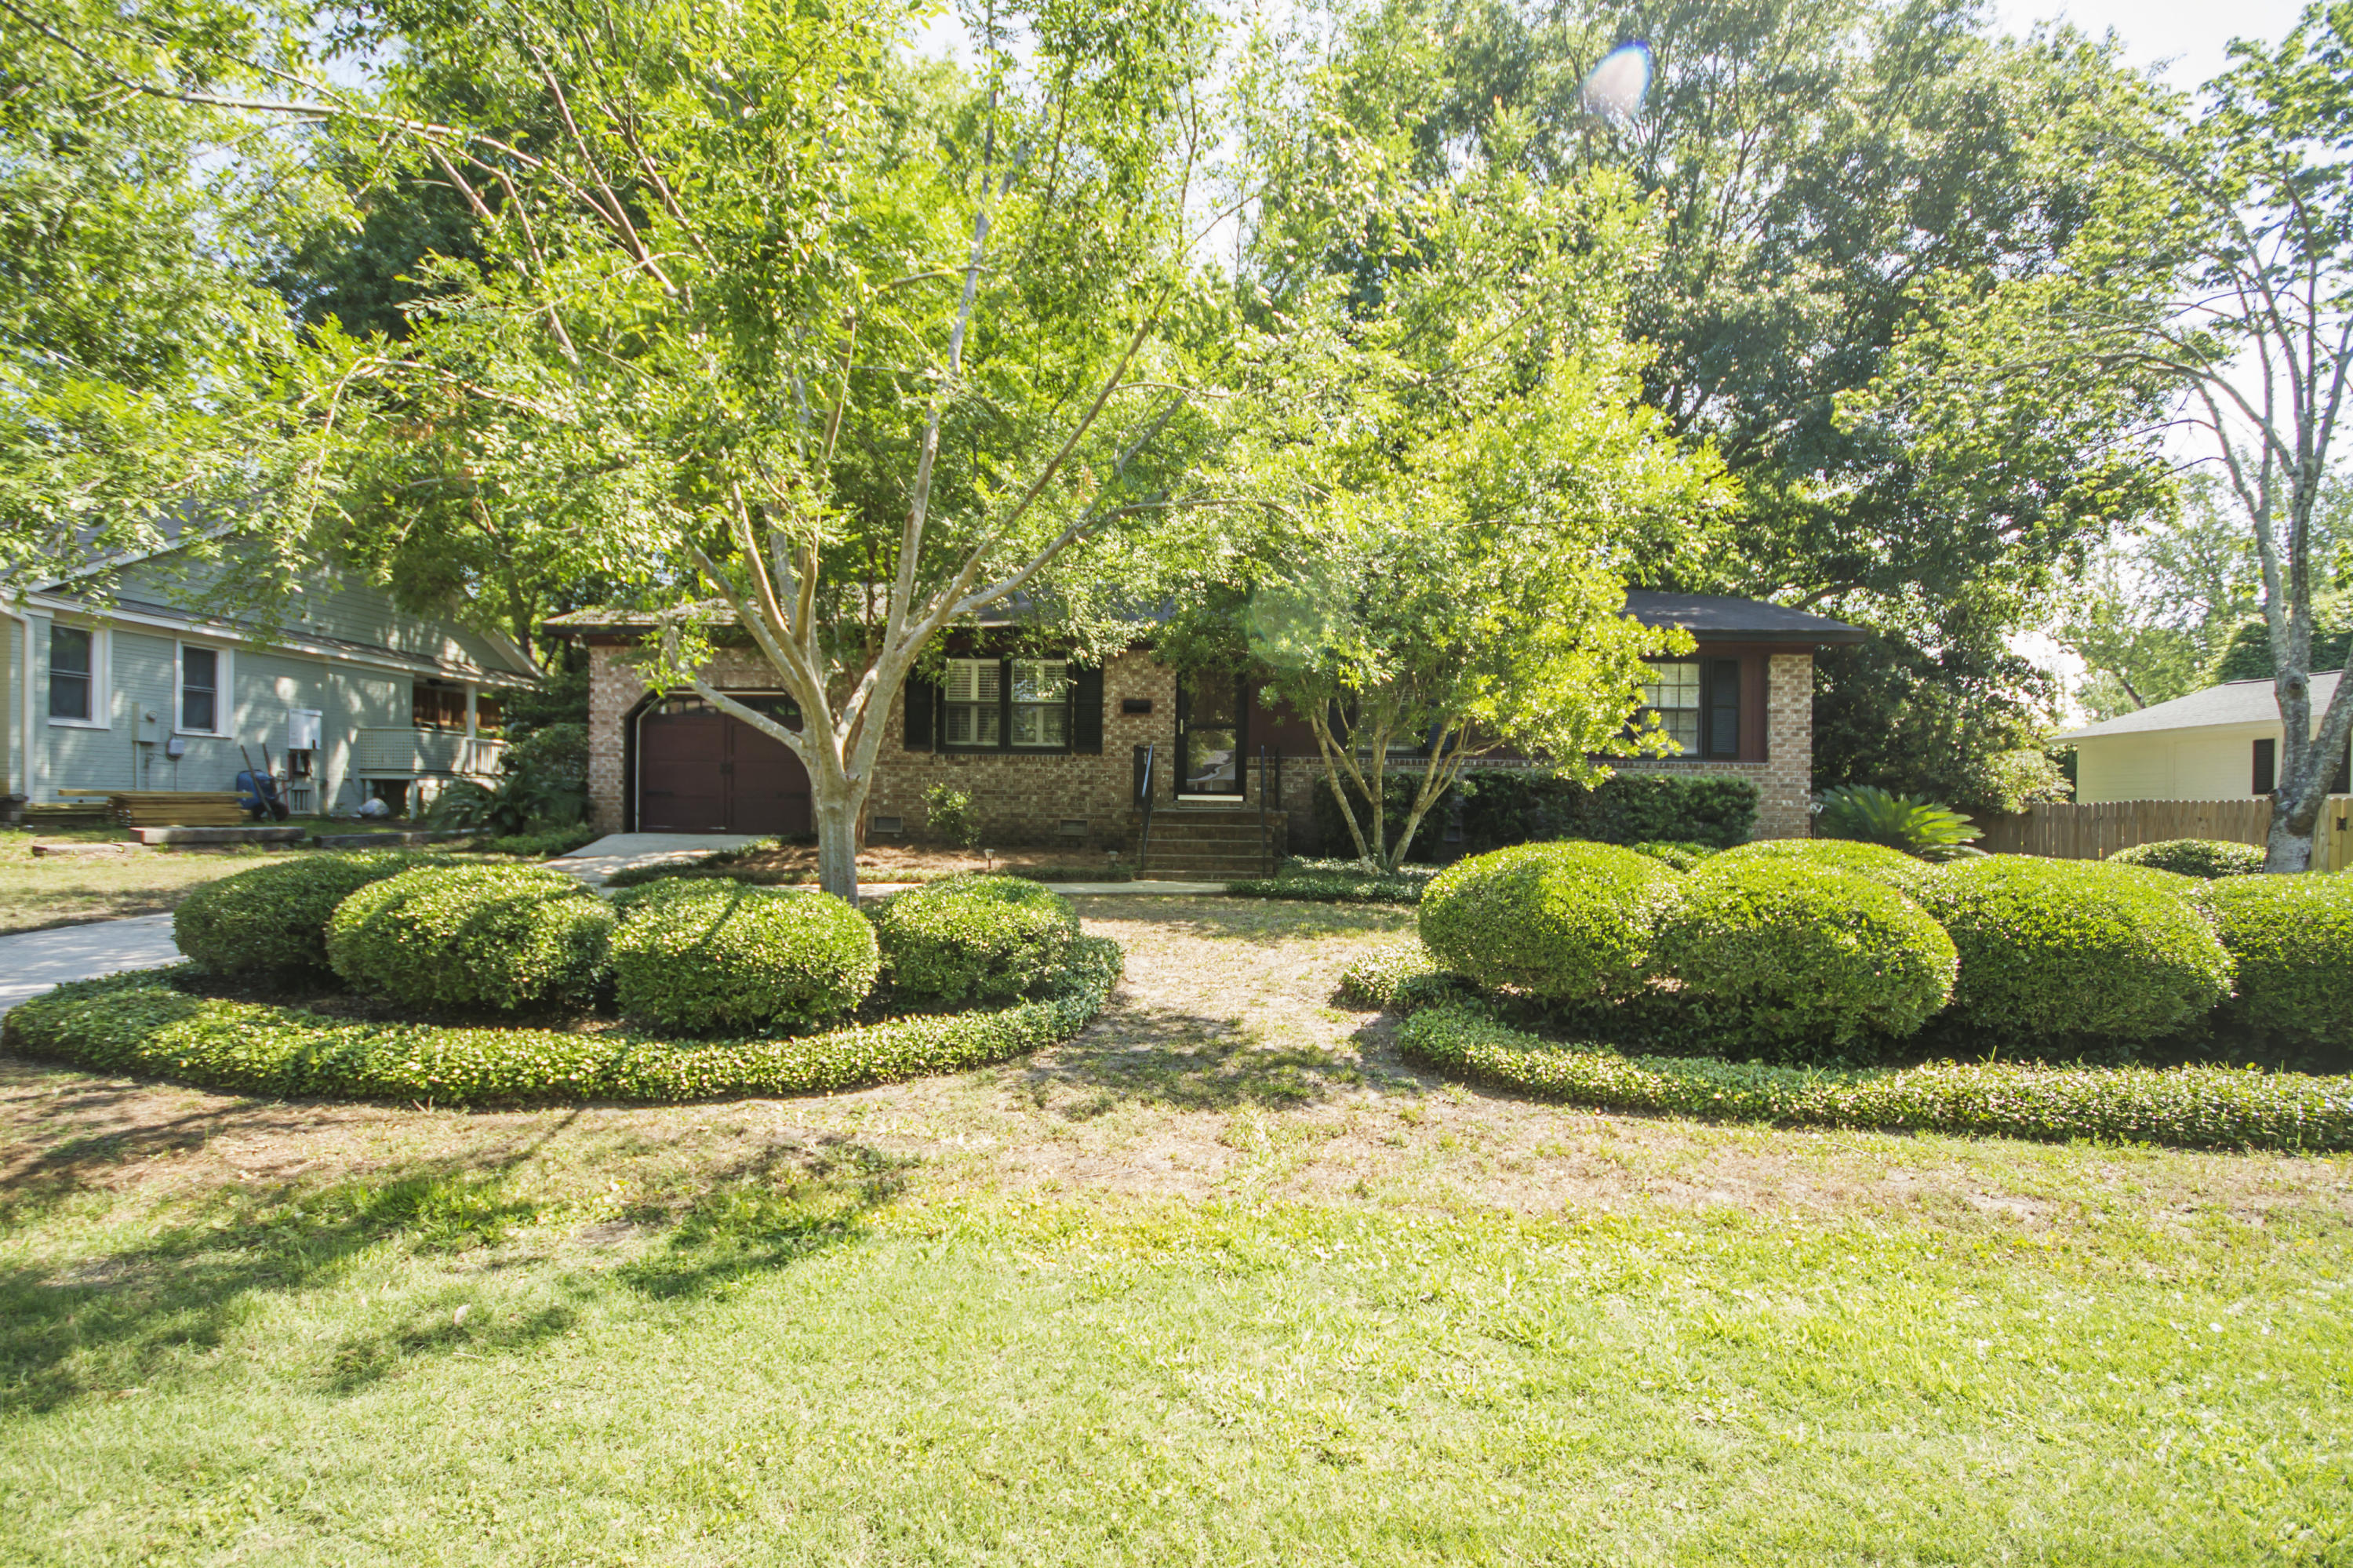 Old Mt Pleasant Homes For Sale - 1455 Glencoe, Mount Pleasant, SC - 9